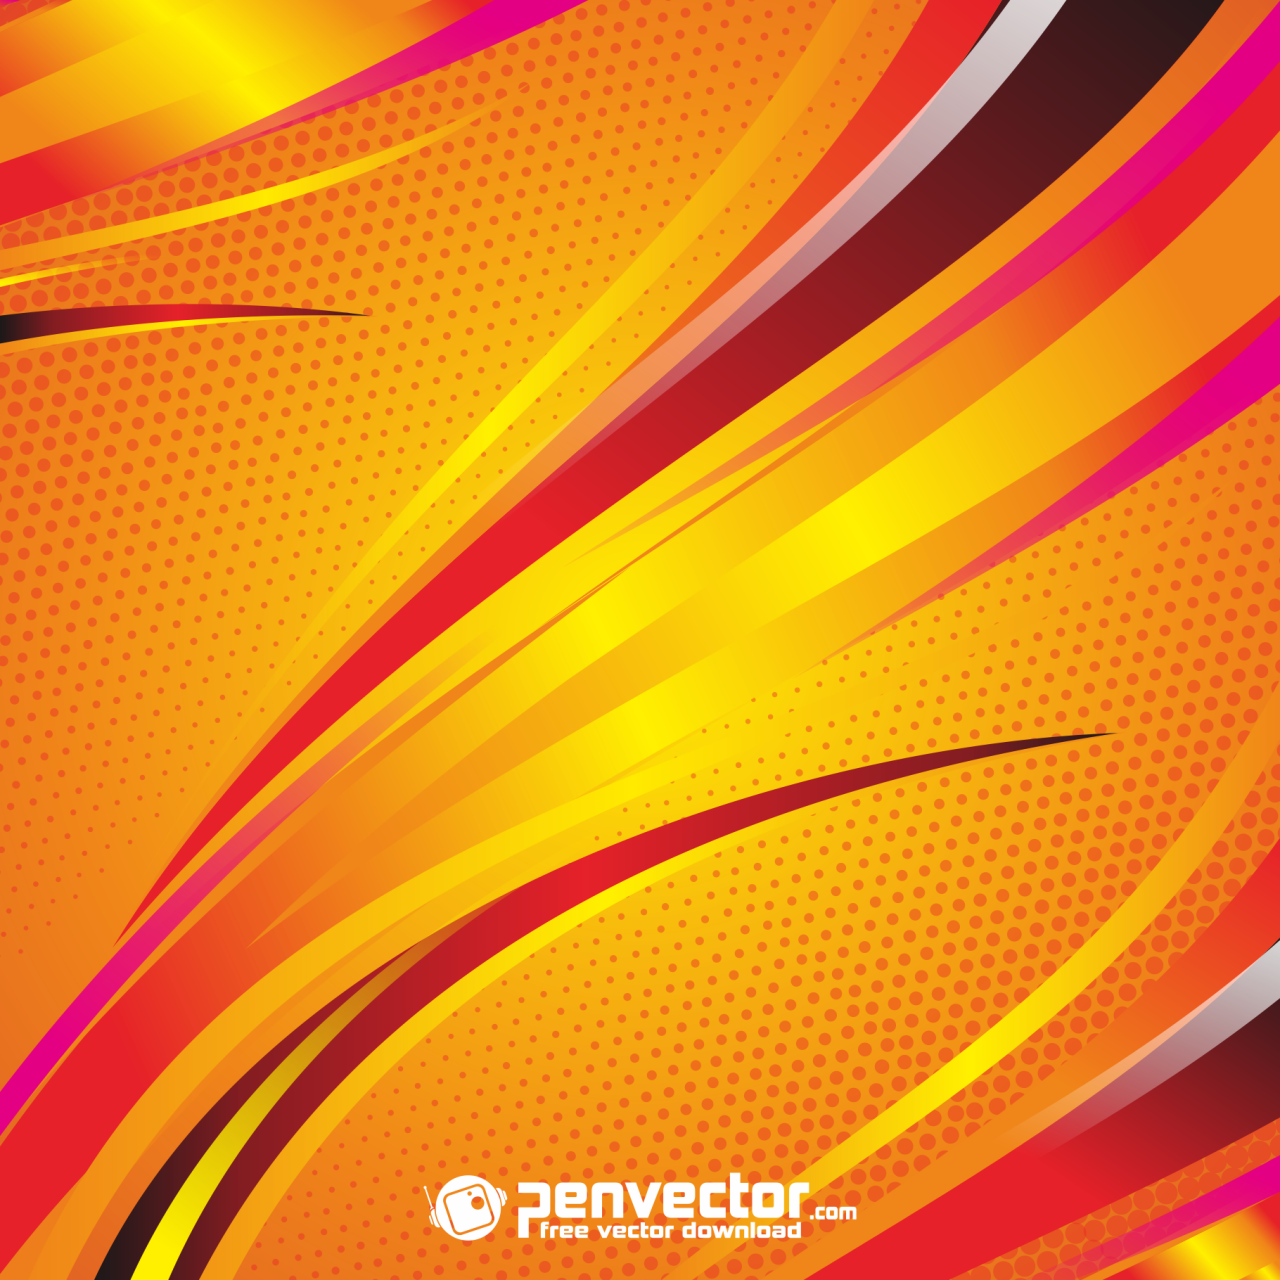 Abstract Line Orange Background Free Vector In 2021 Abstract Lines Backgrounds Free Vector Free